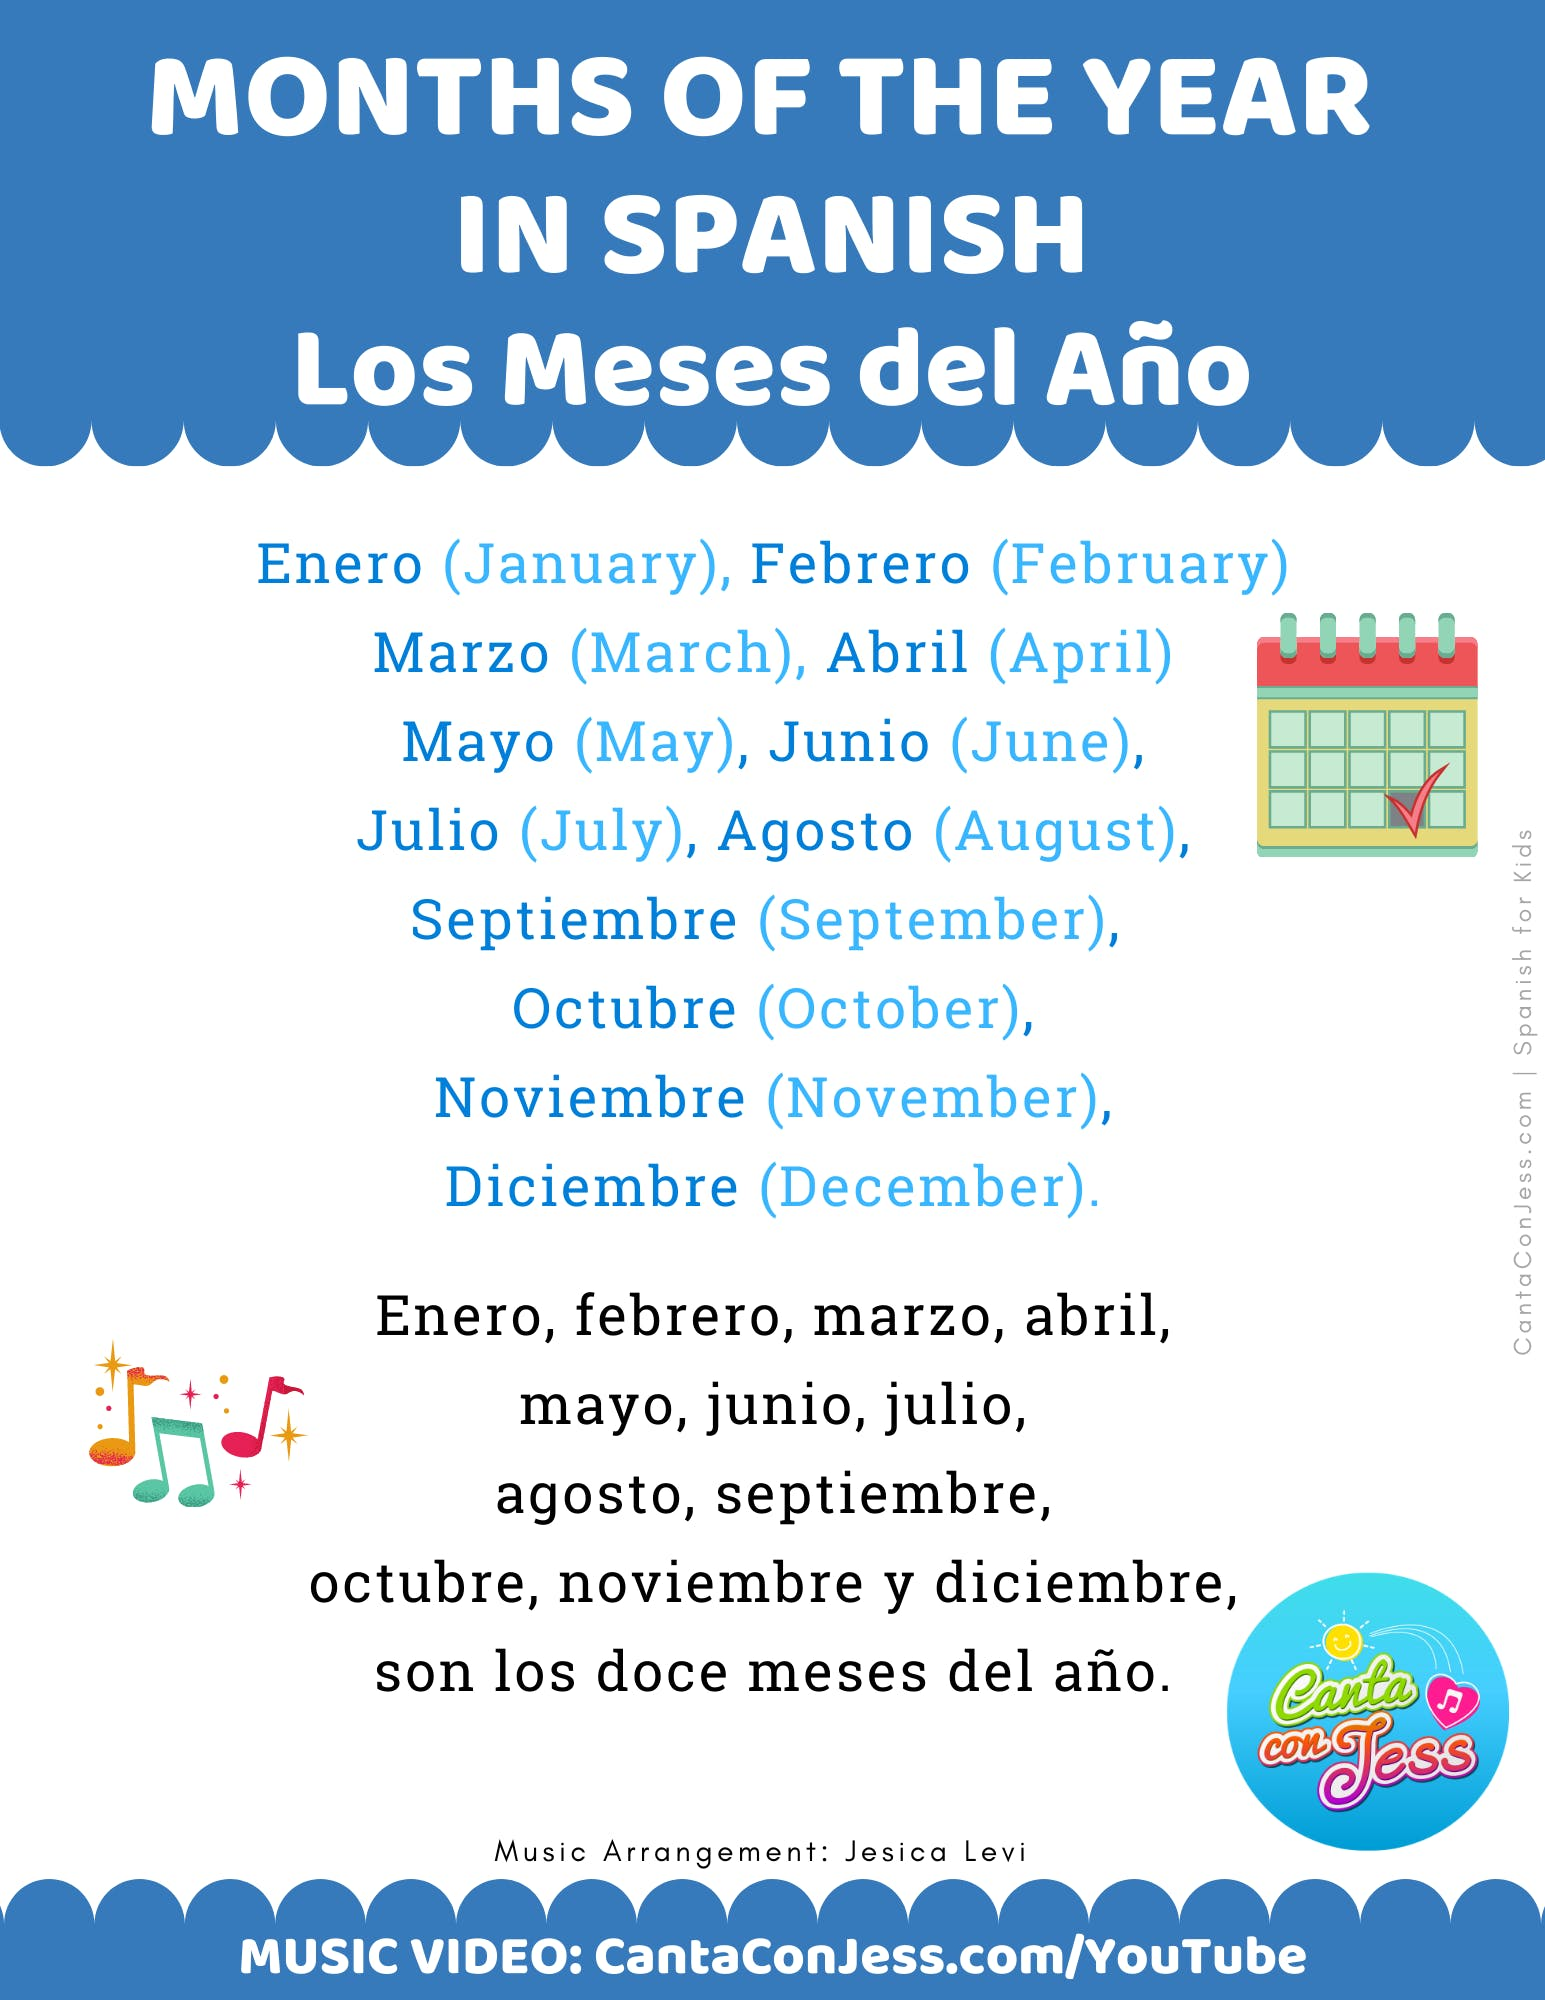 Months of the Year in Spanish LYRICS - Los Meses del Año